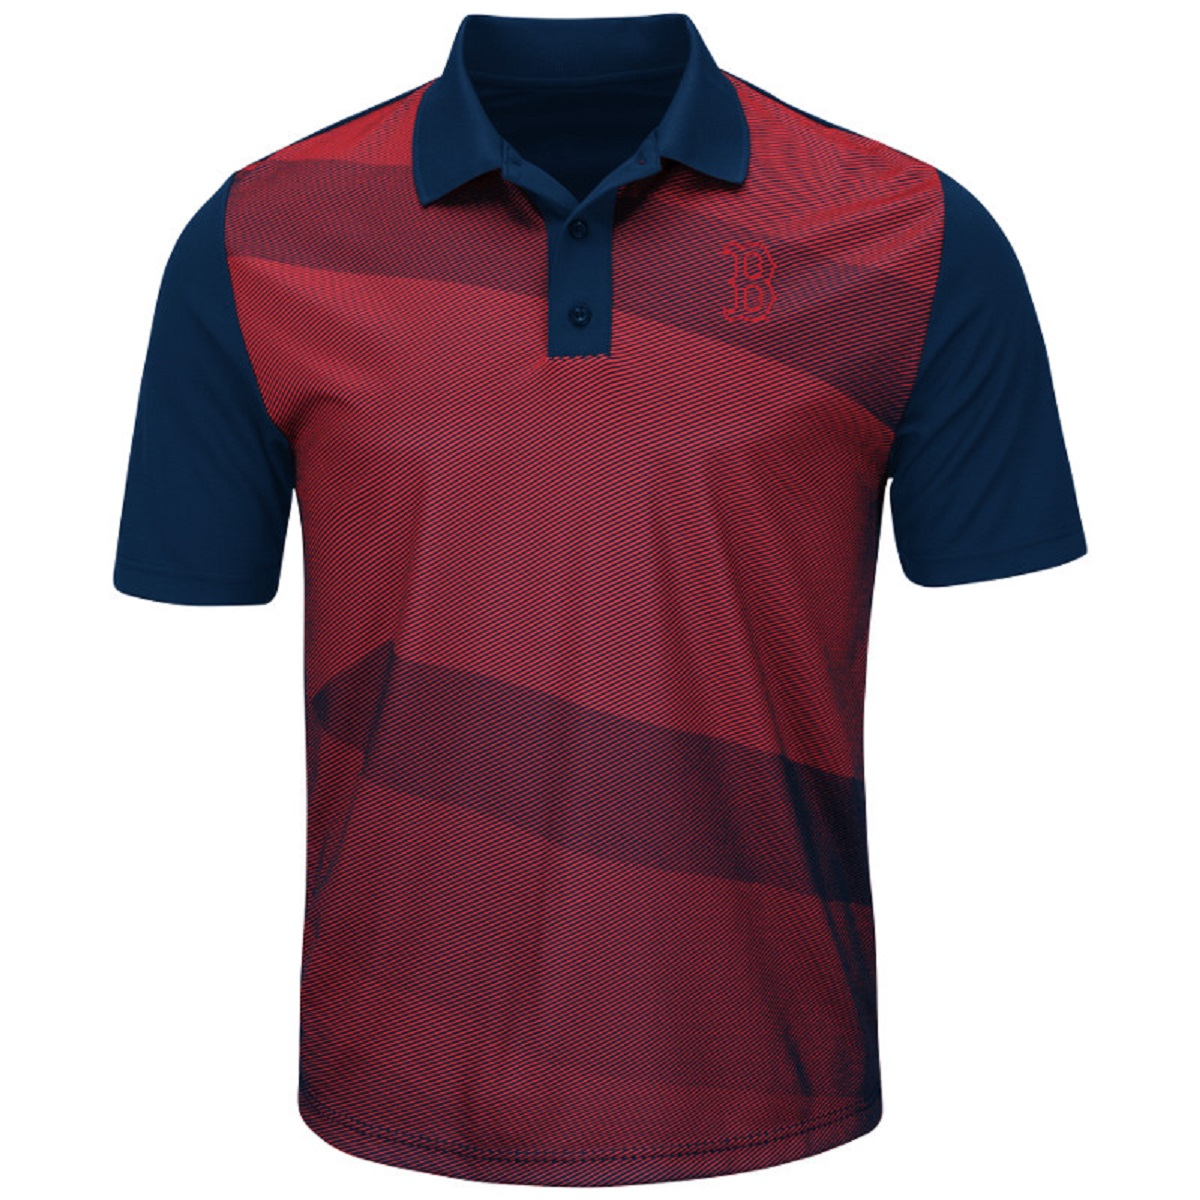 Boston Red Sox Late Night Prize Red/Blue Sublimated Cool Base Polo Shirt (S)